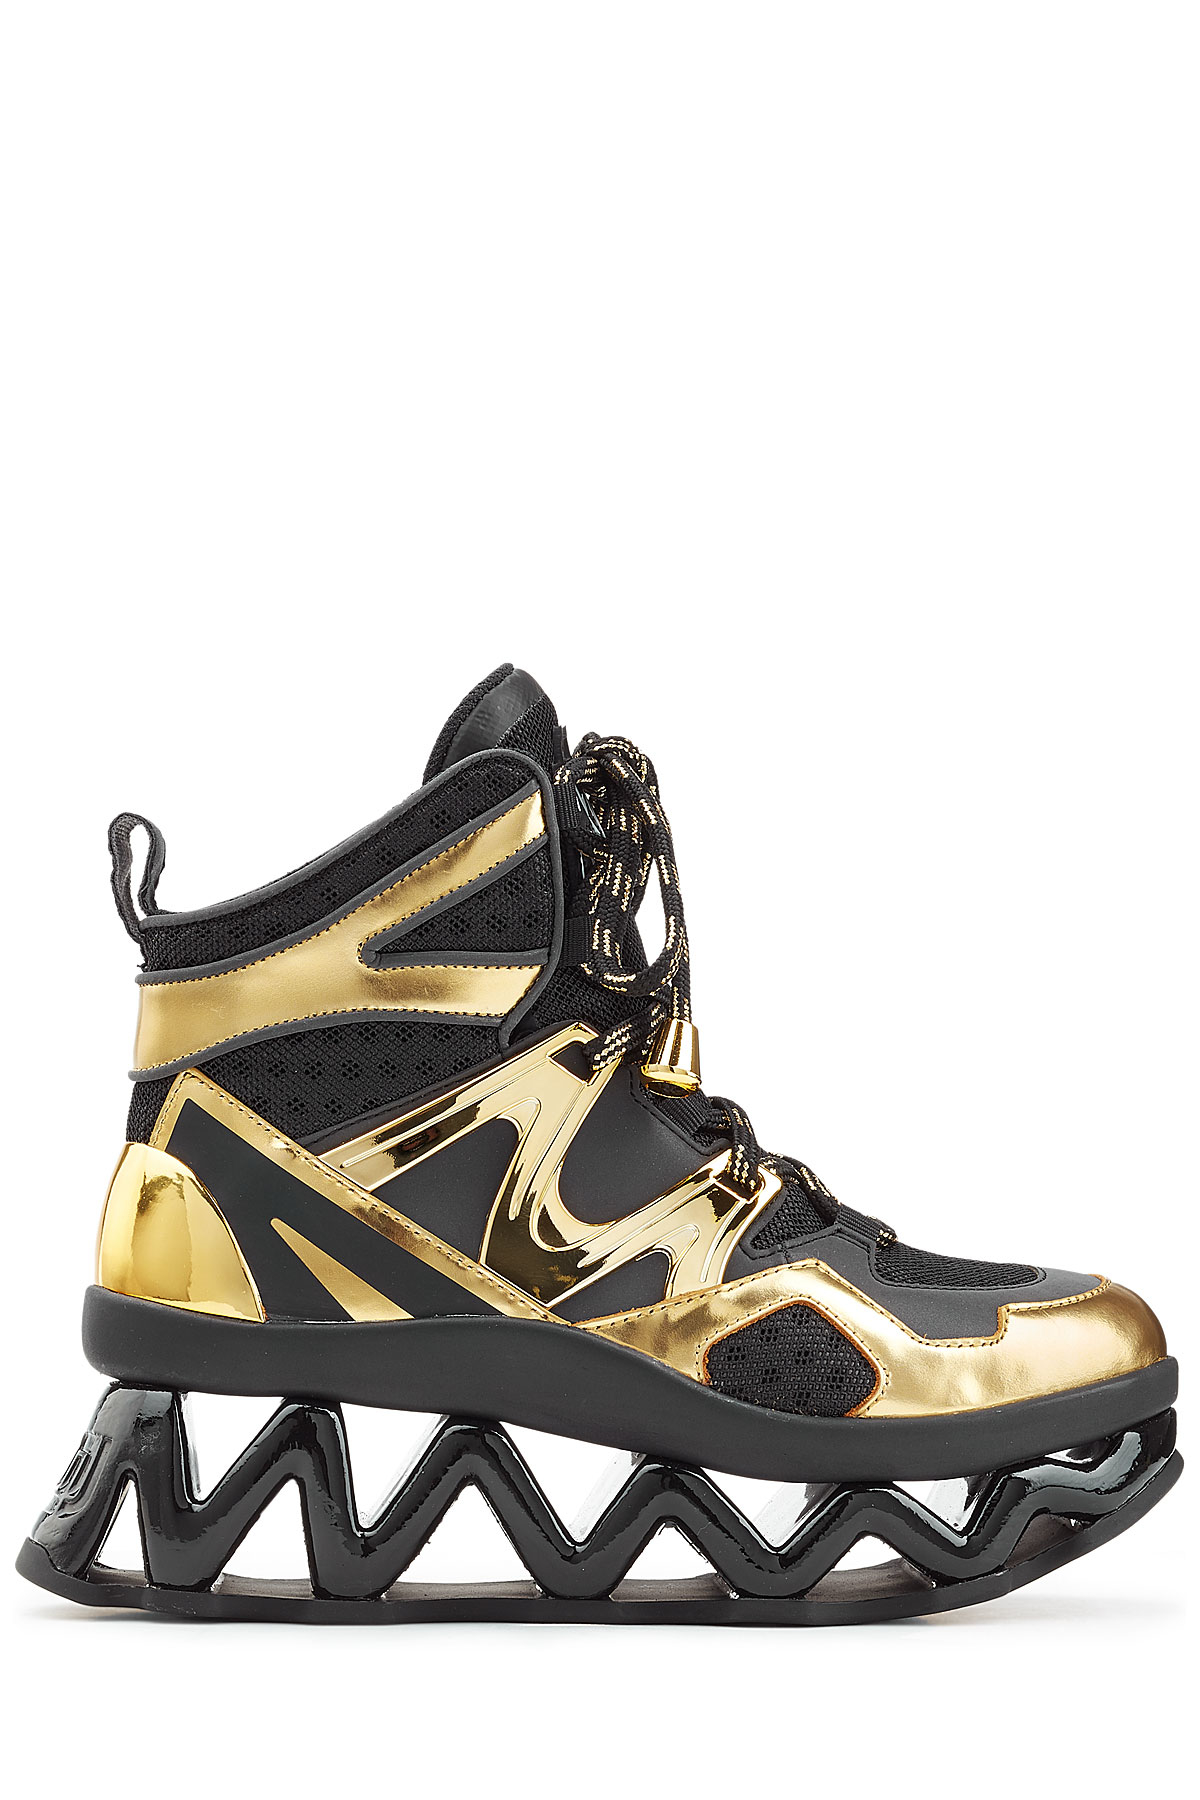 d76d53a19cfe Marc By Marc Jacobs Ninja High Top Platform Sneakers - Gold in ...